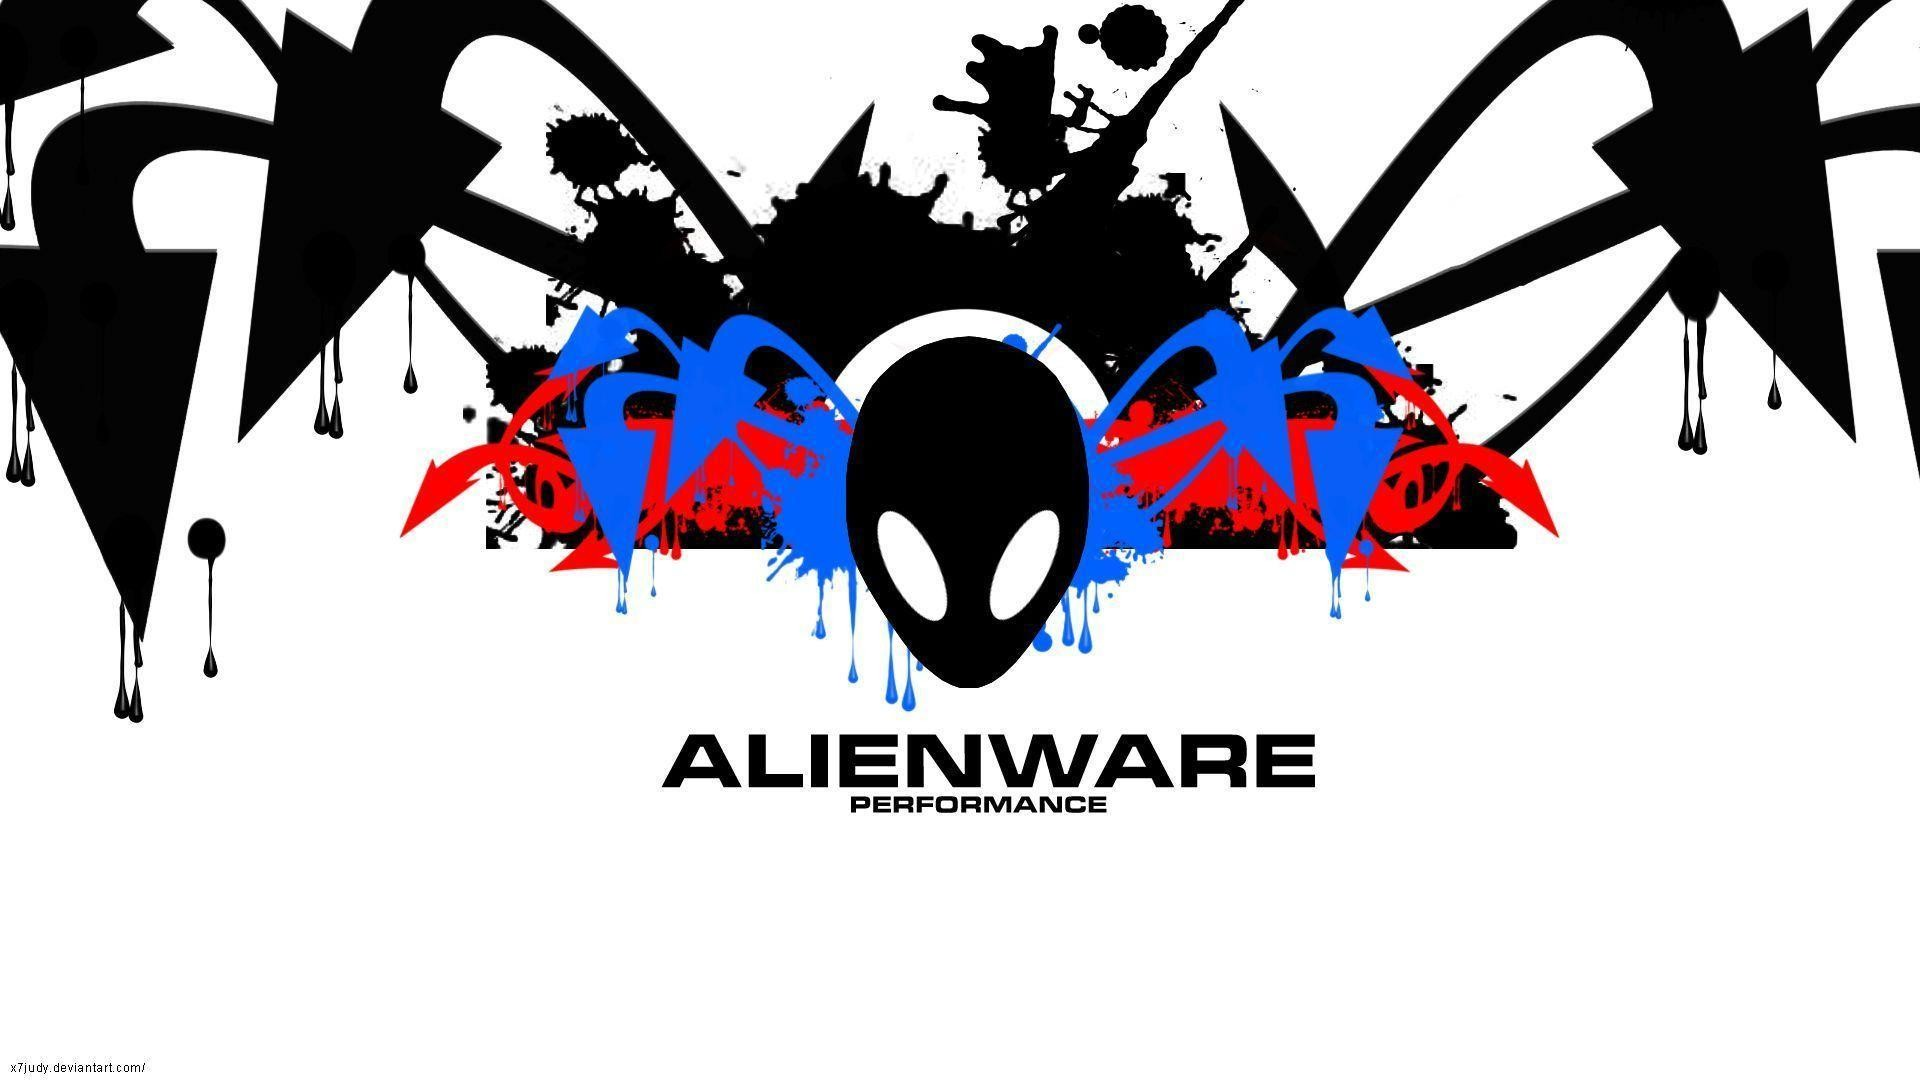 Alienware wallpapers for windows 7 wallpapersafari - 1920x1080 Alienware Wallpaper 72 Dpi Wallpapersafari